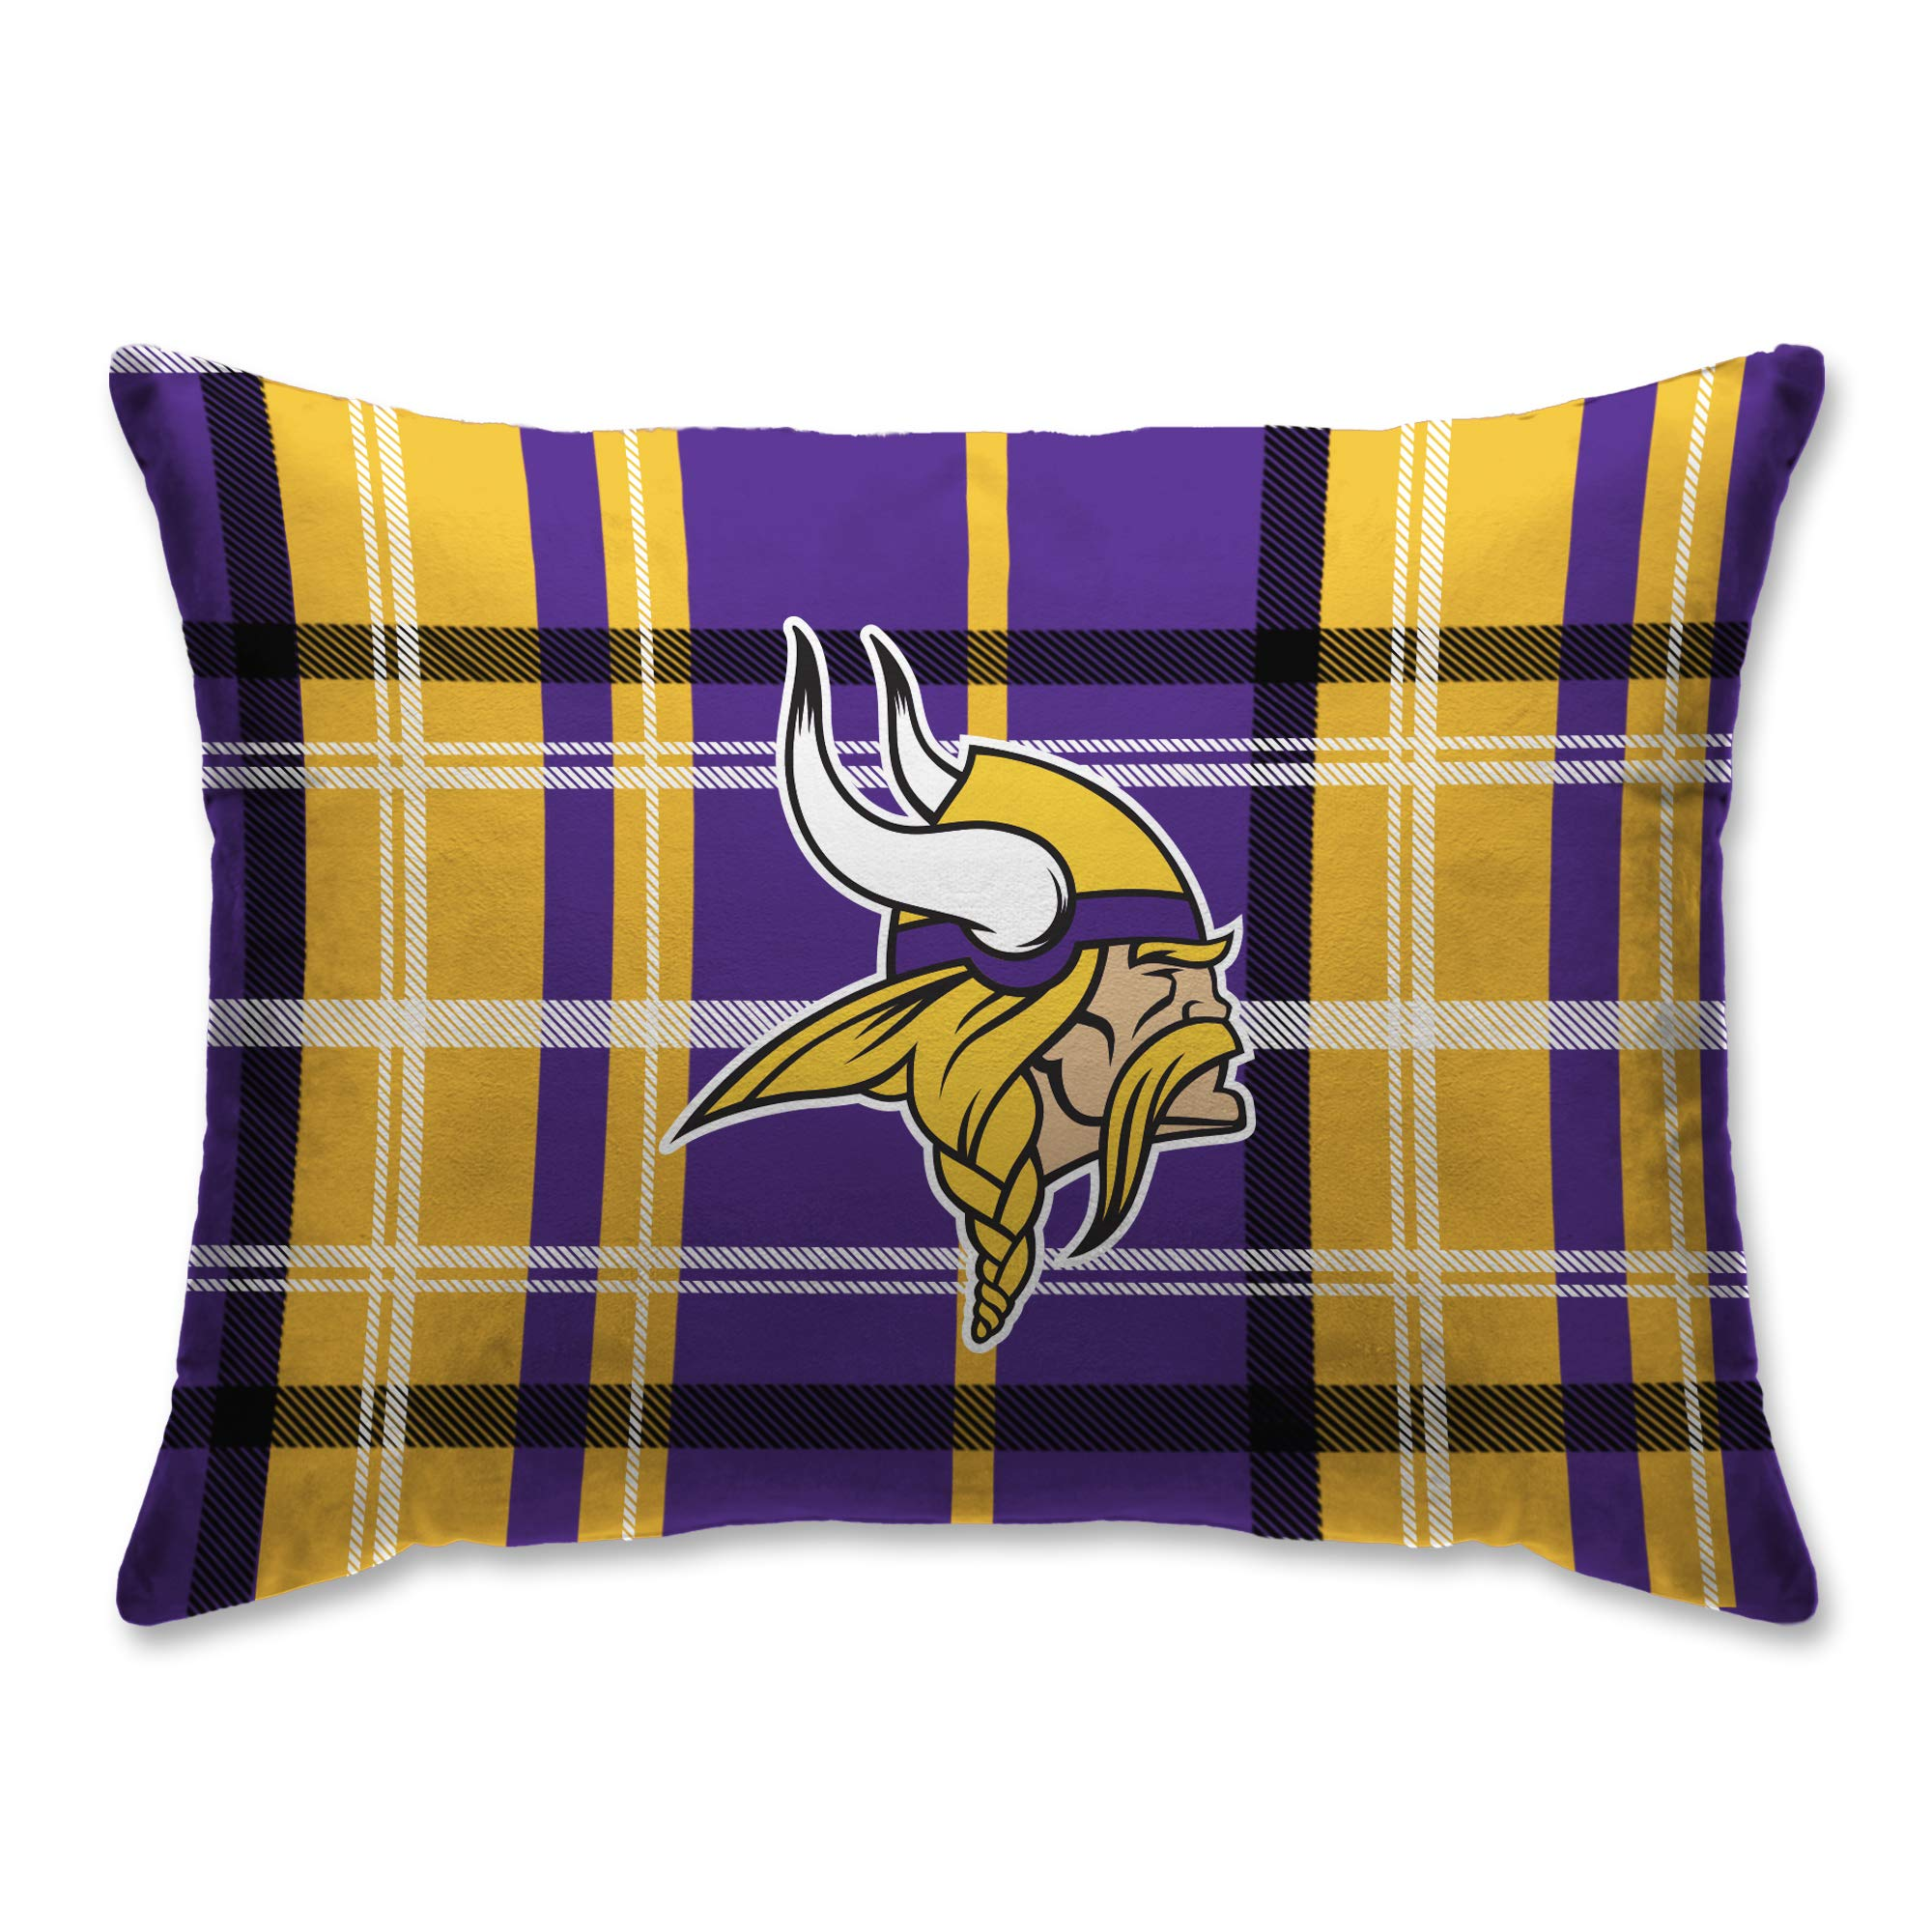 Pegasus Sports Minnesota Vikings Plaid 20'' x 26'' Plush Bed Pillow, Set of 2#598058987 by Pegasus Sports